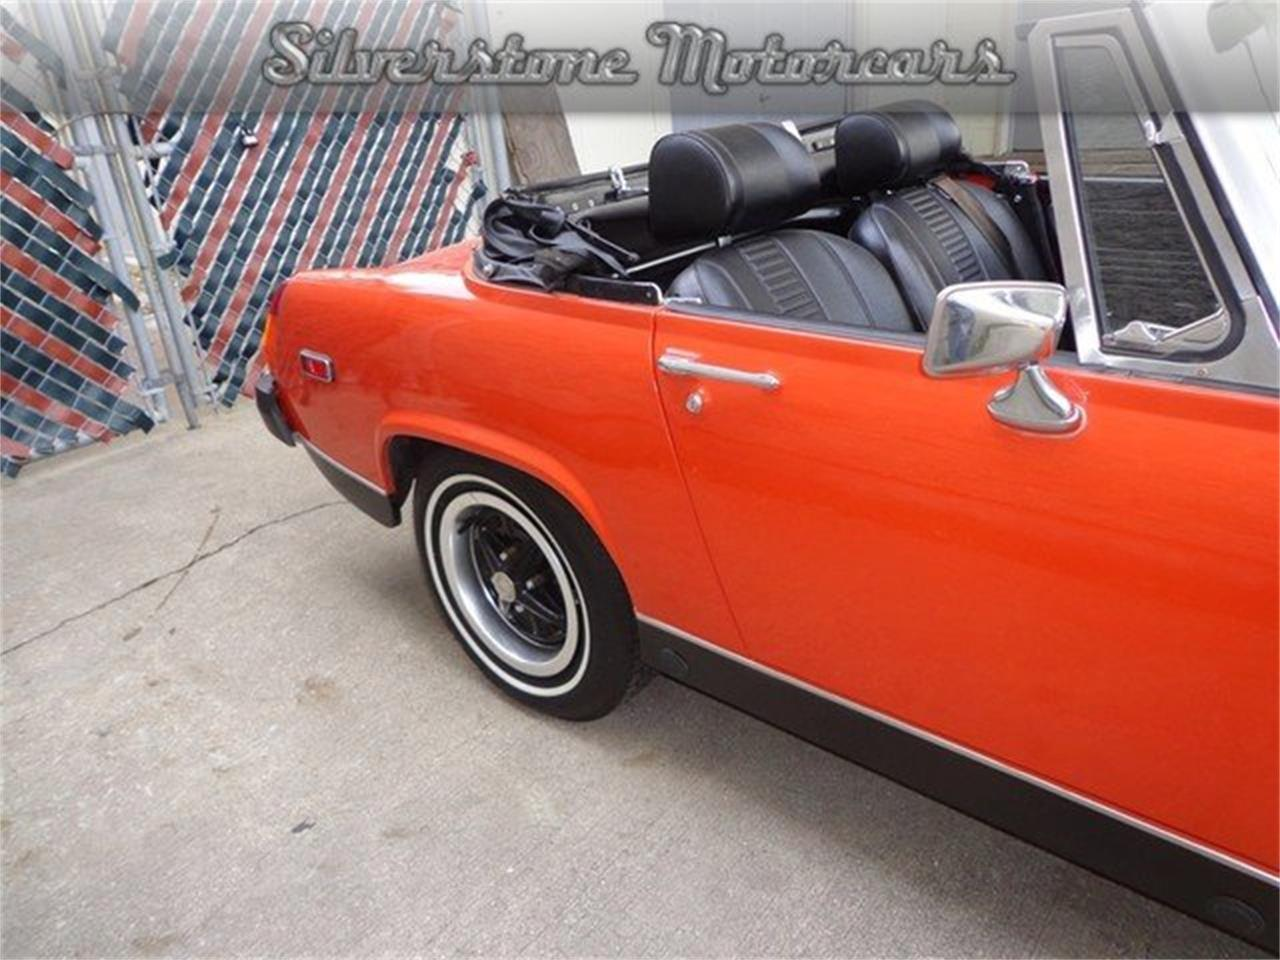 Large Picture of 1976 MG Midget located in North Andover Massachusetts - $7,500.00 Offered by Silverstone Motorcars - F8K7